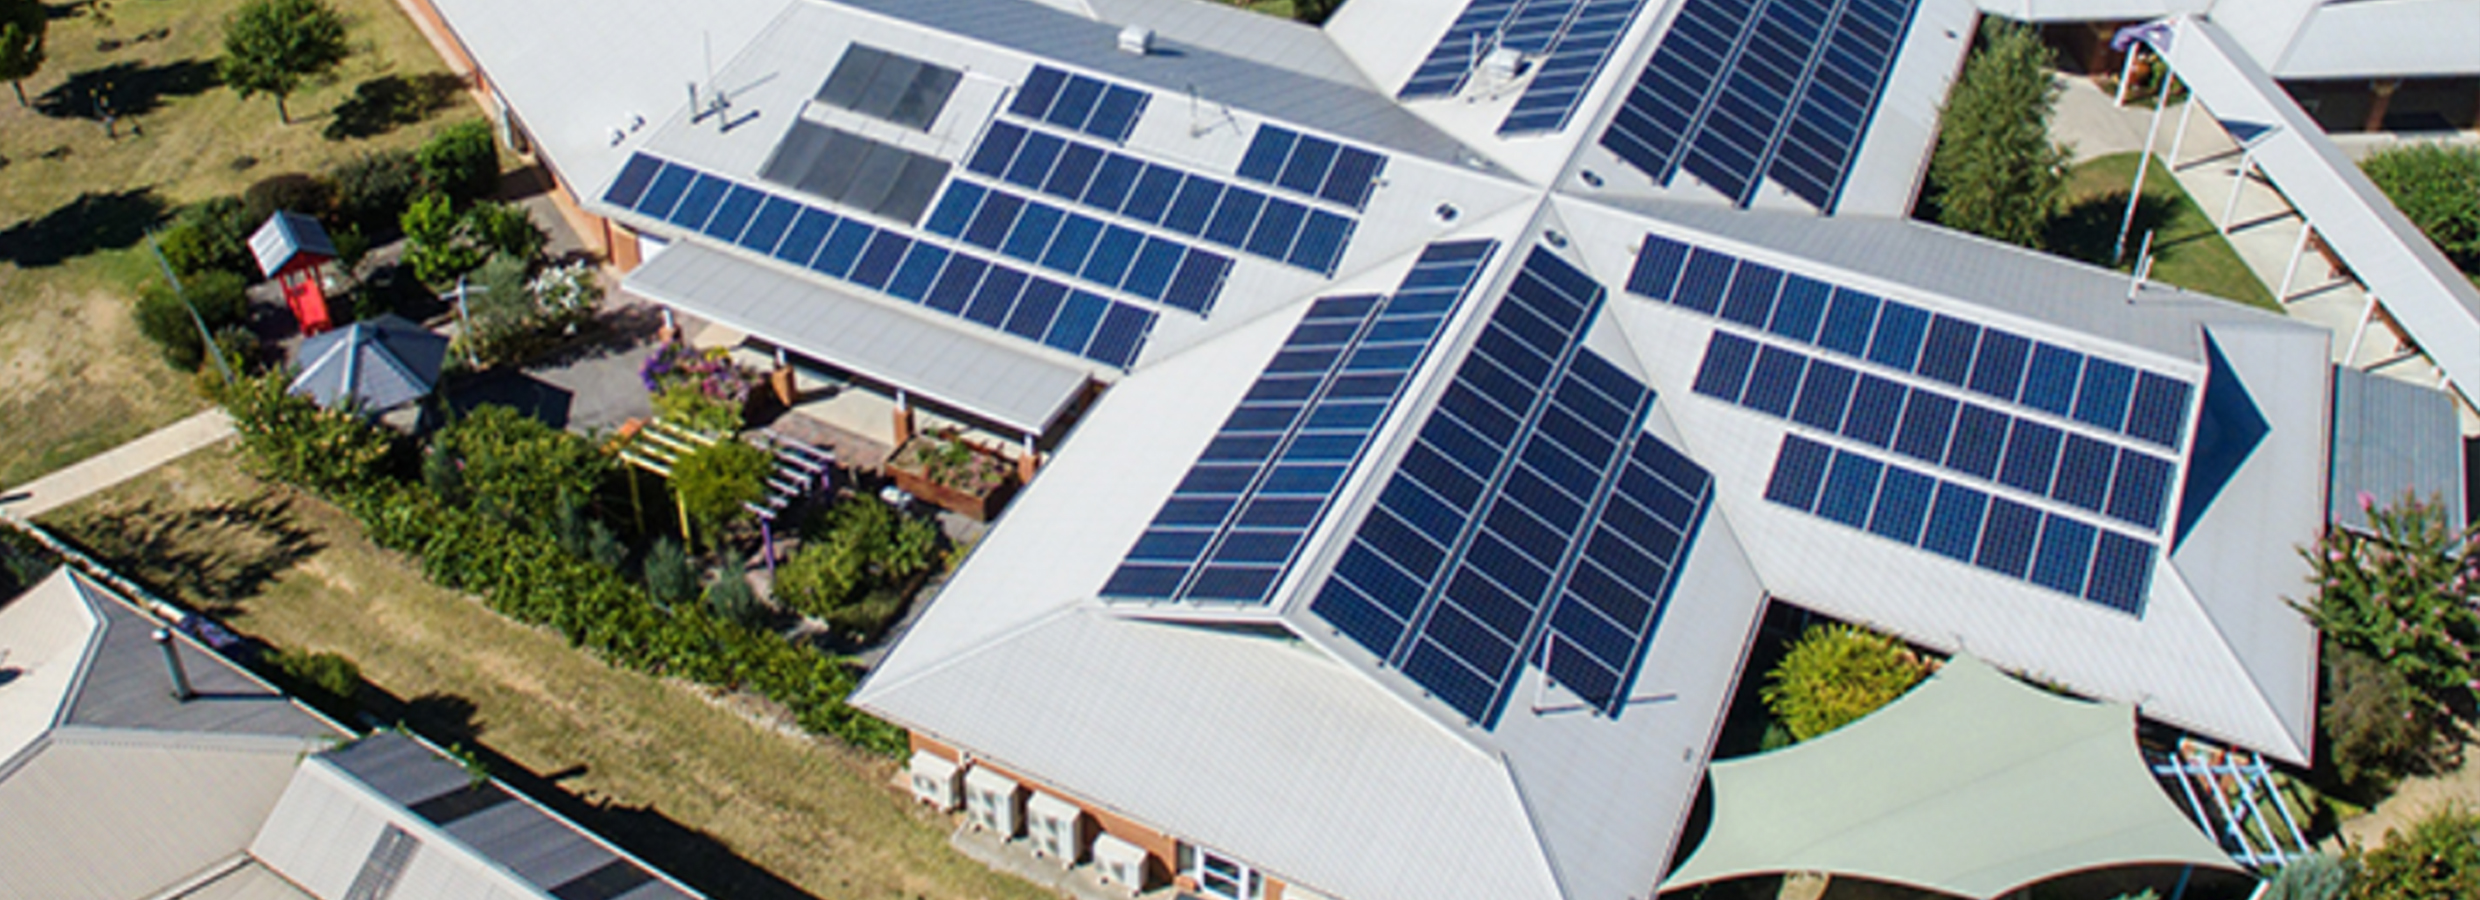 New charges expected for homes with solar. - featured image